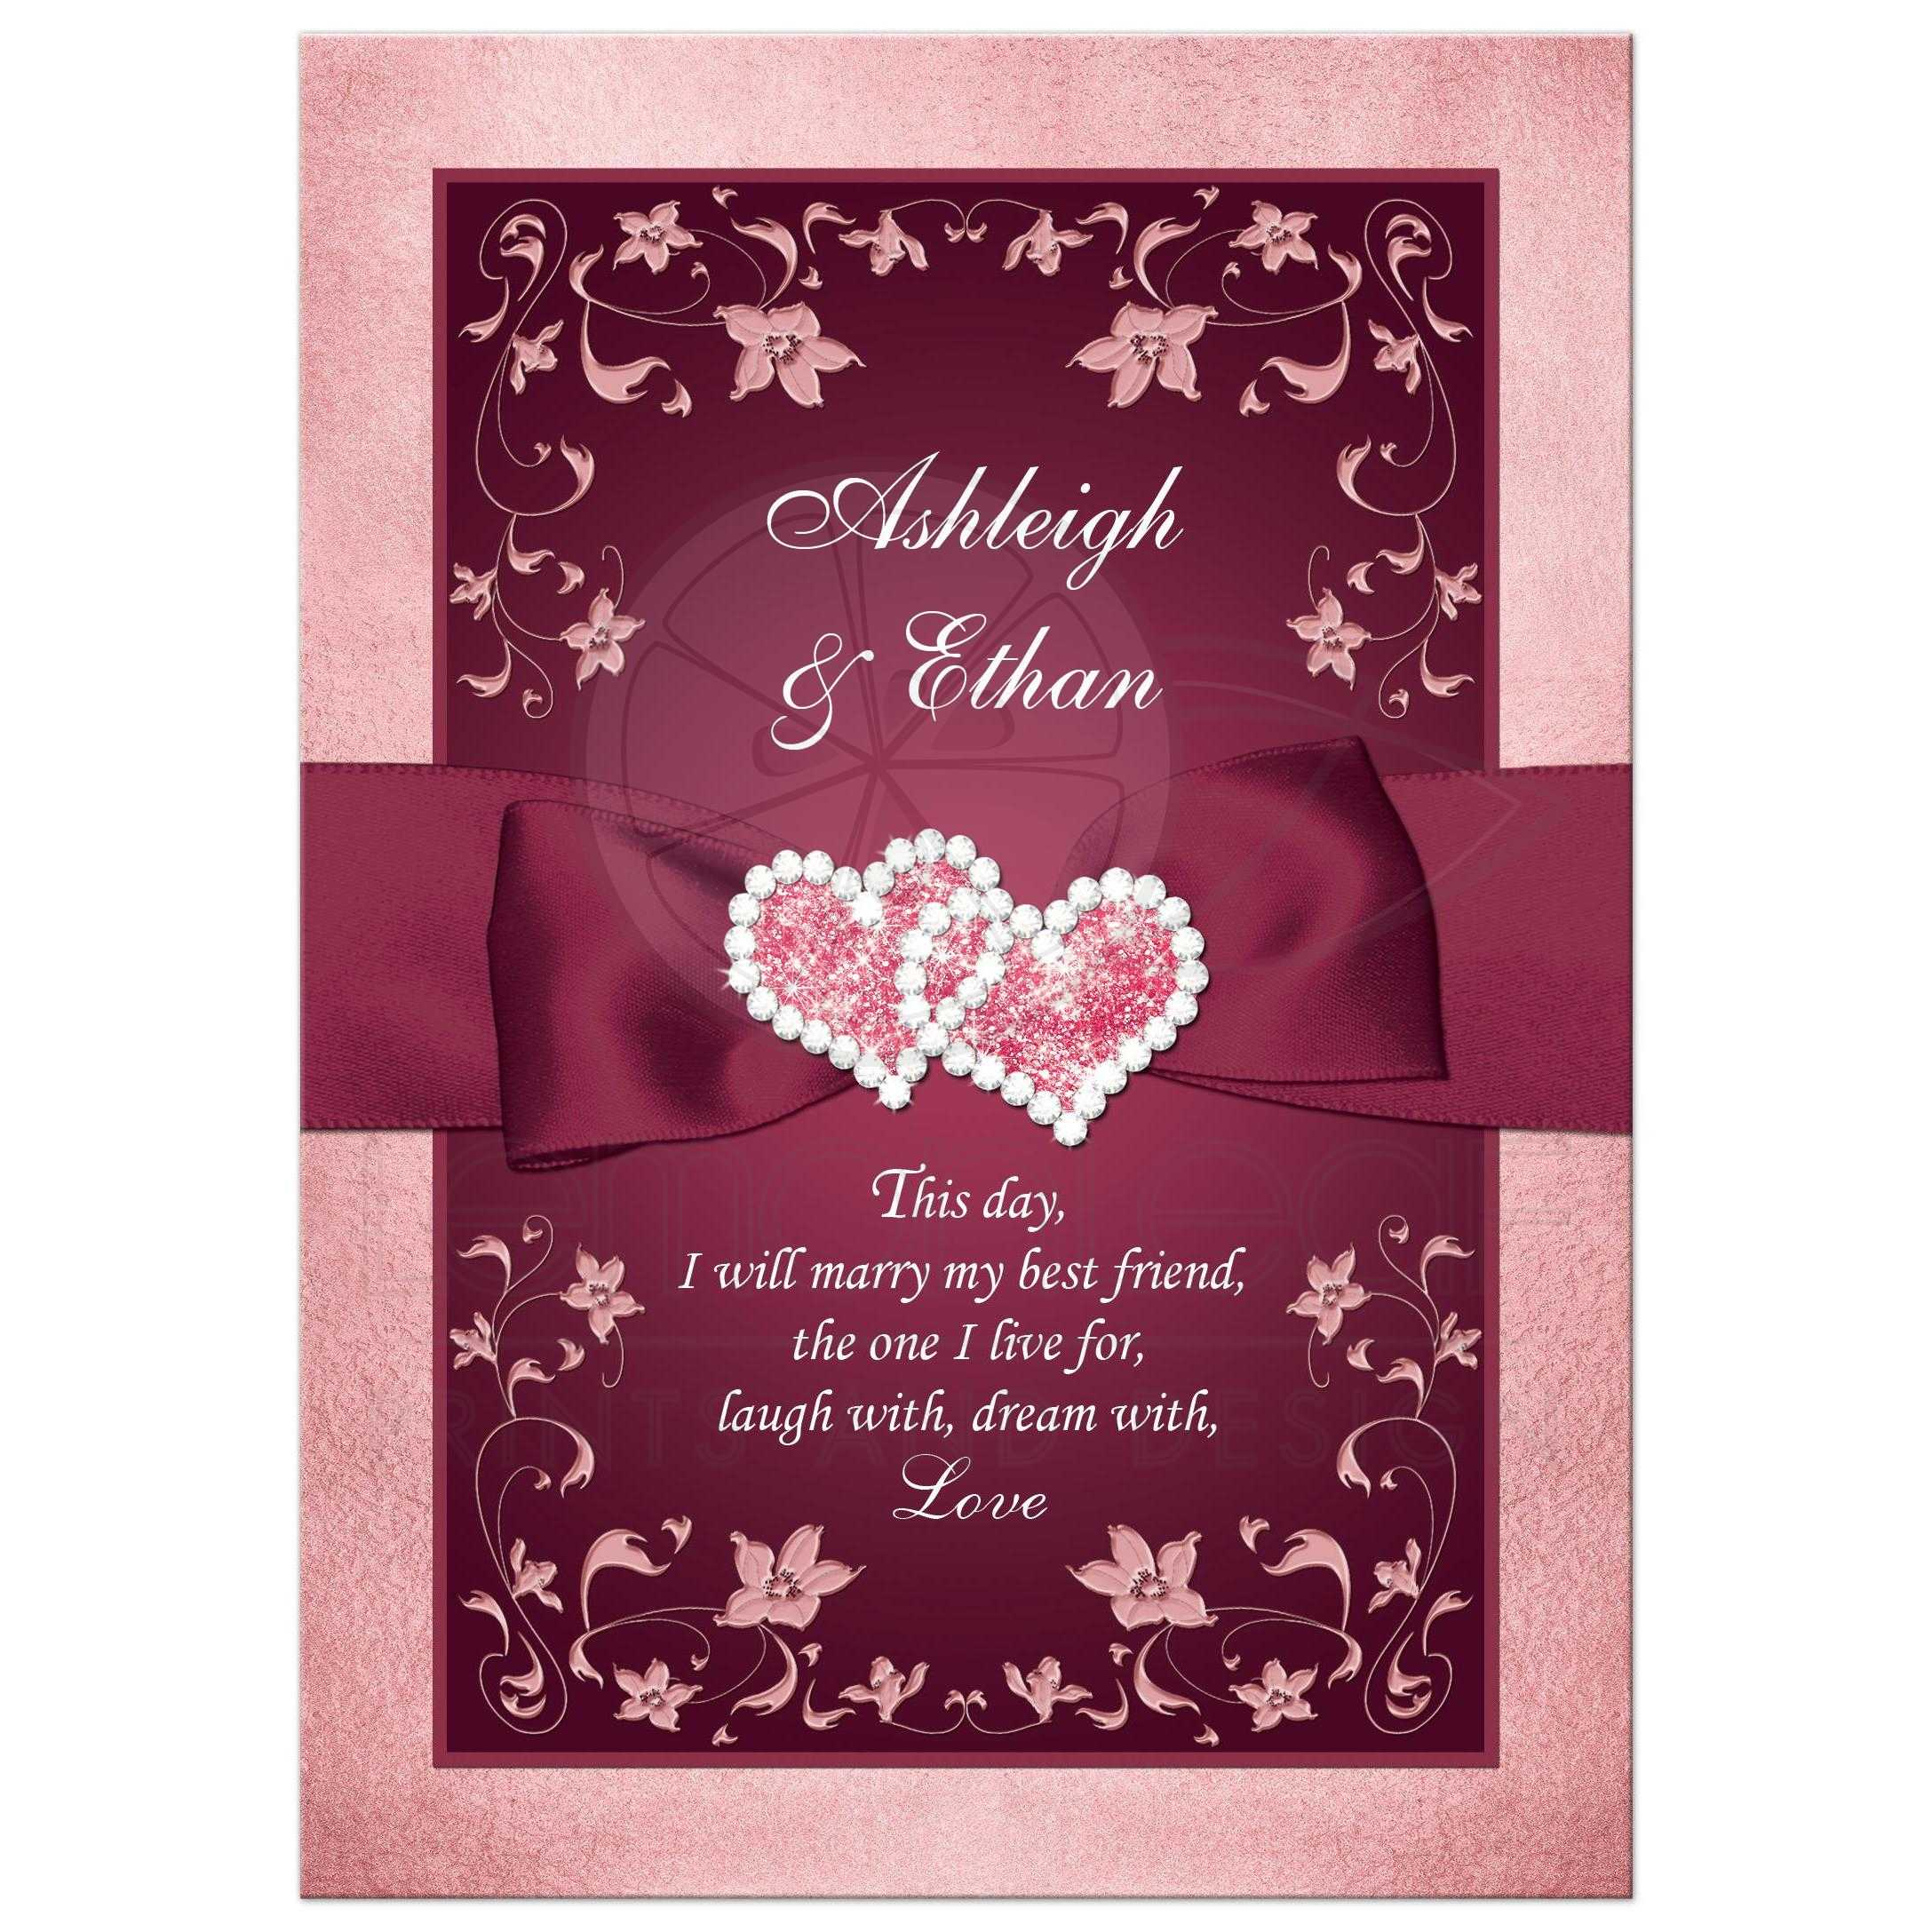 print invitations - Acur.lunamedia.co